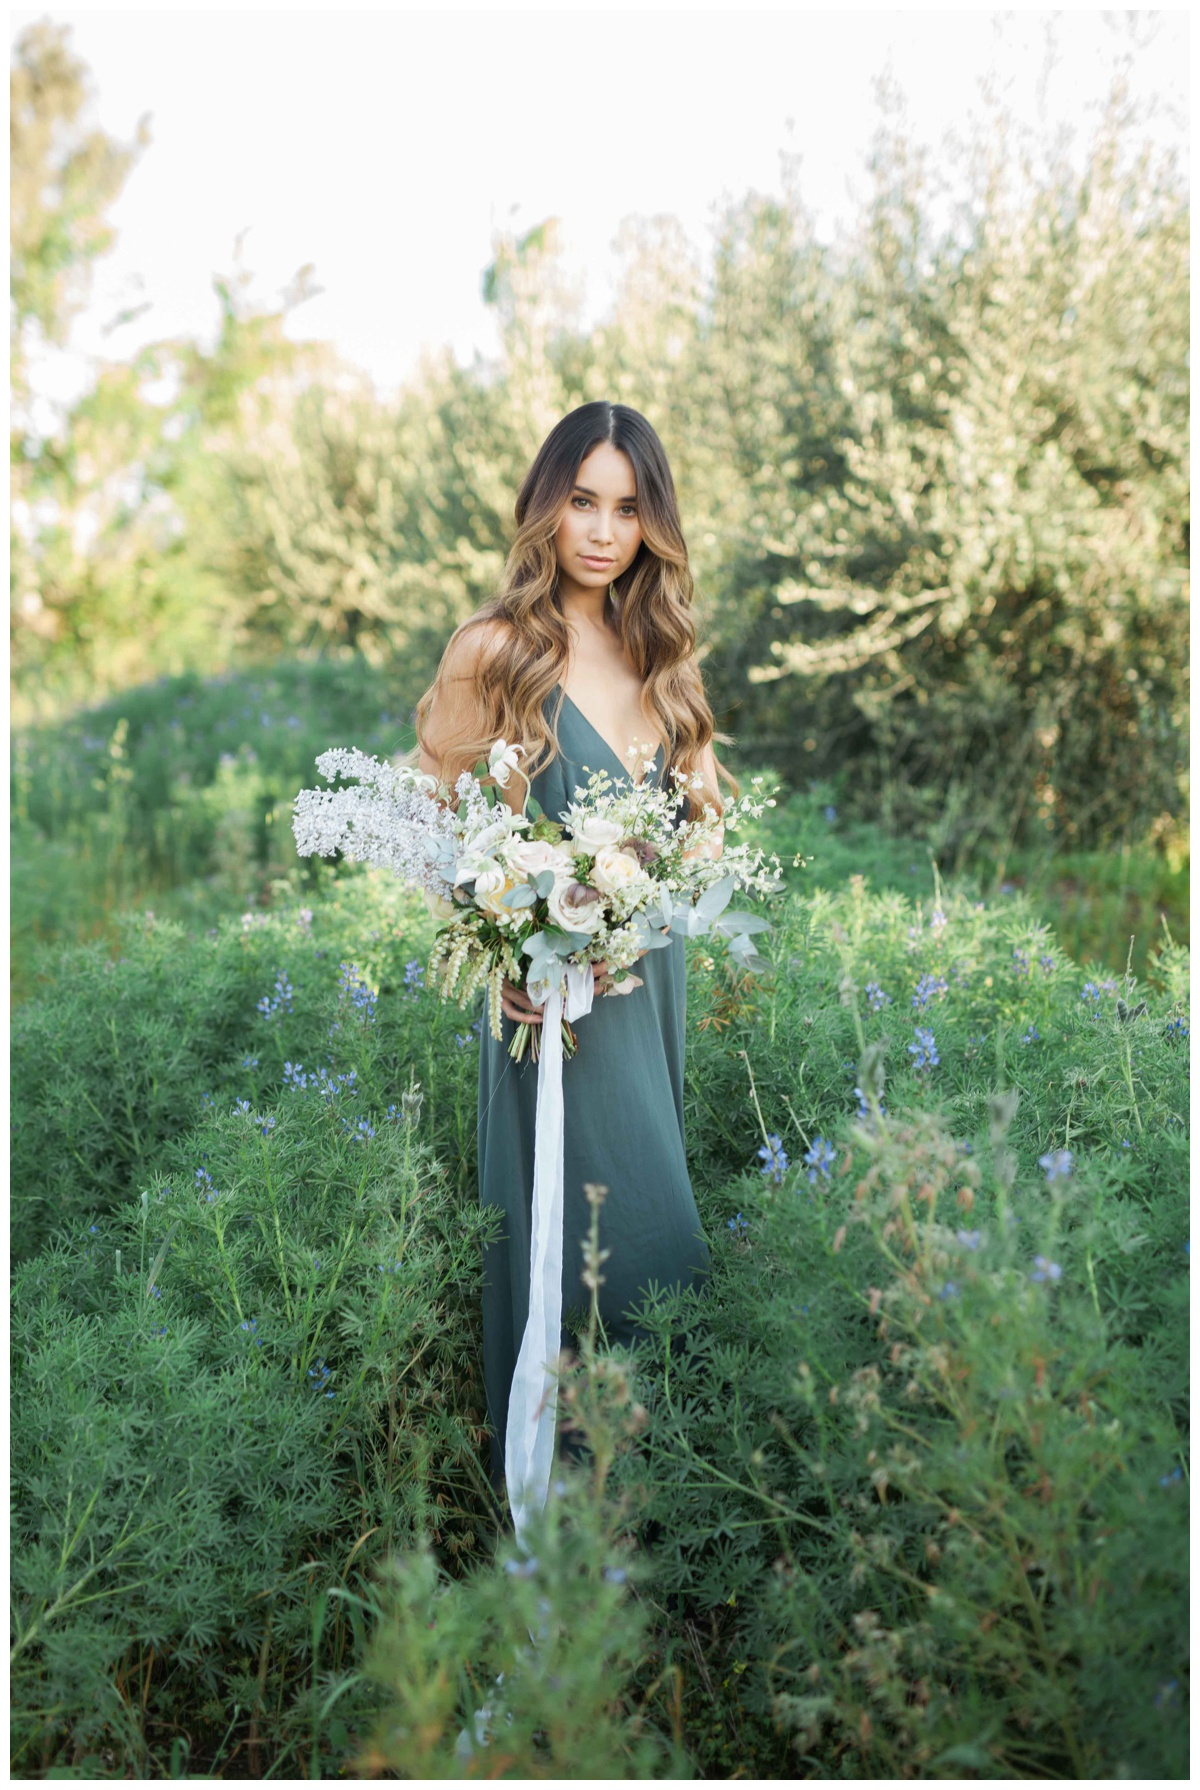 CA Floral Couture & Chrystal Hair - Tessa Kit Photography - Perth Wedding & Engagement Photographer - October 01, 2017 - IMG_8077.jpg